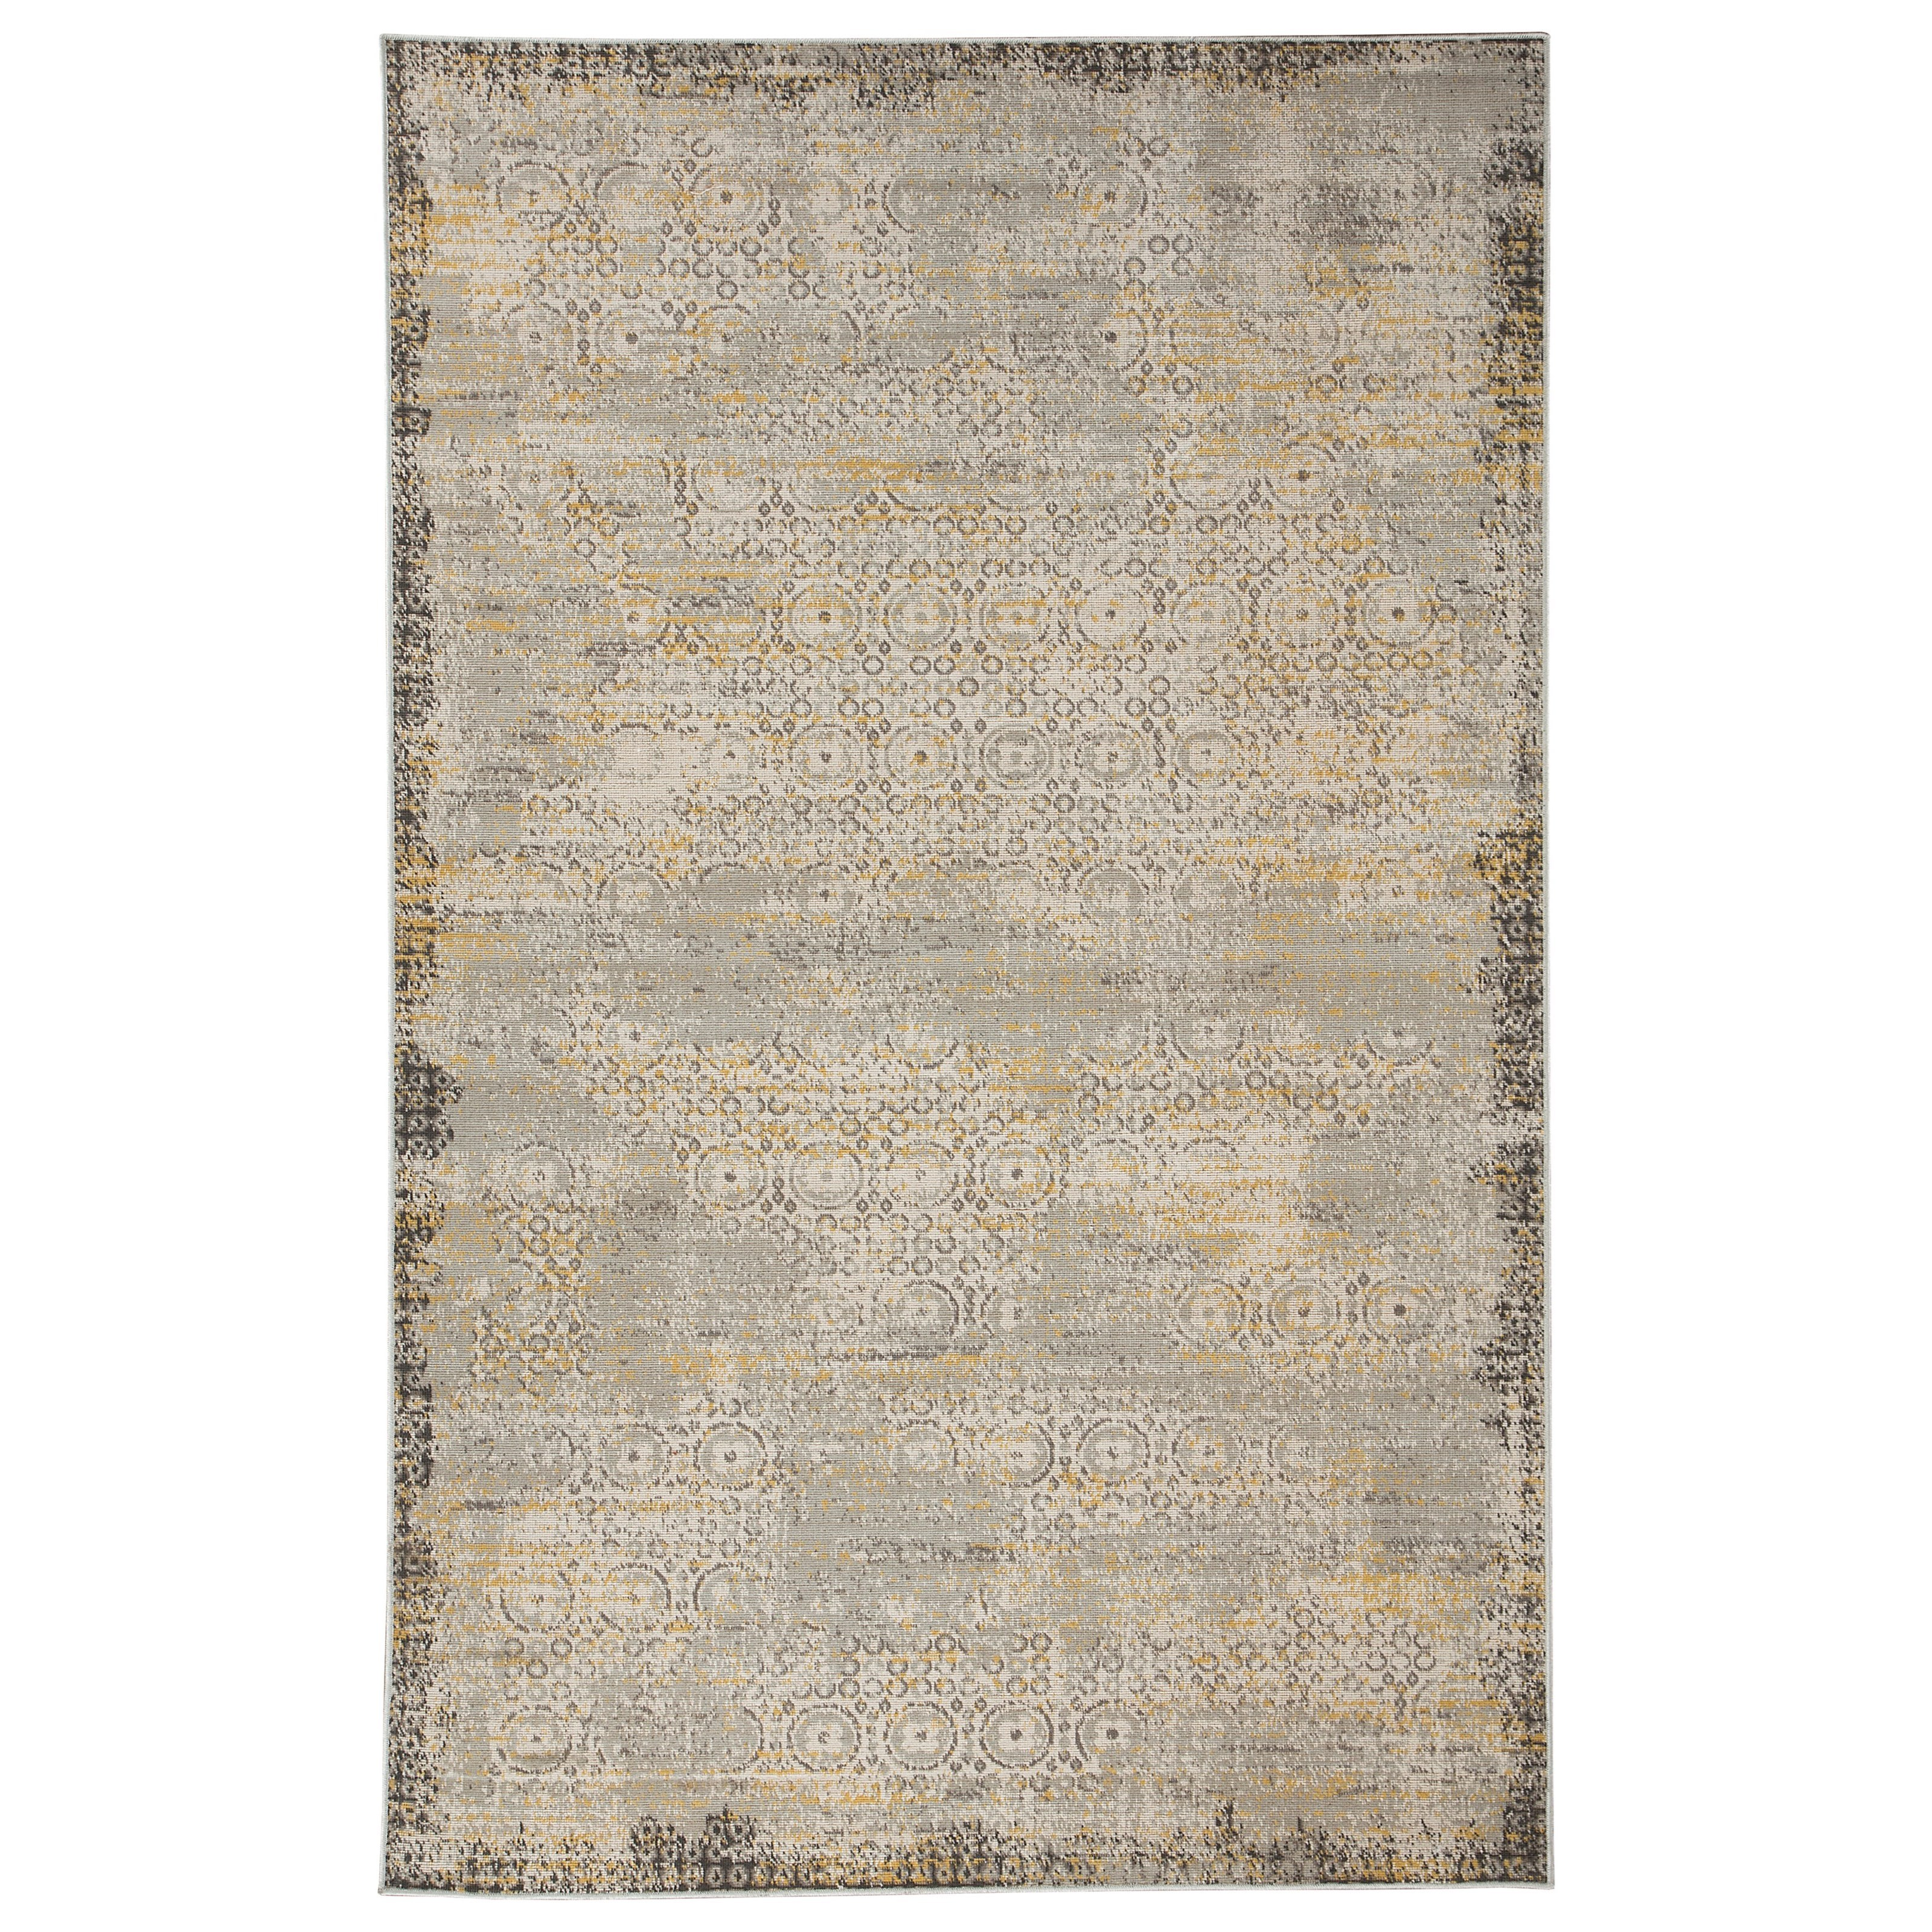 Signature Design by Ashley Transitional Area Rugs Dallon Silver Large Rug - Item Number: R400461